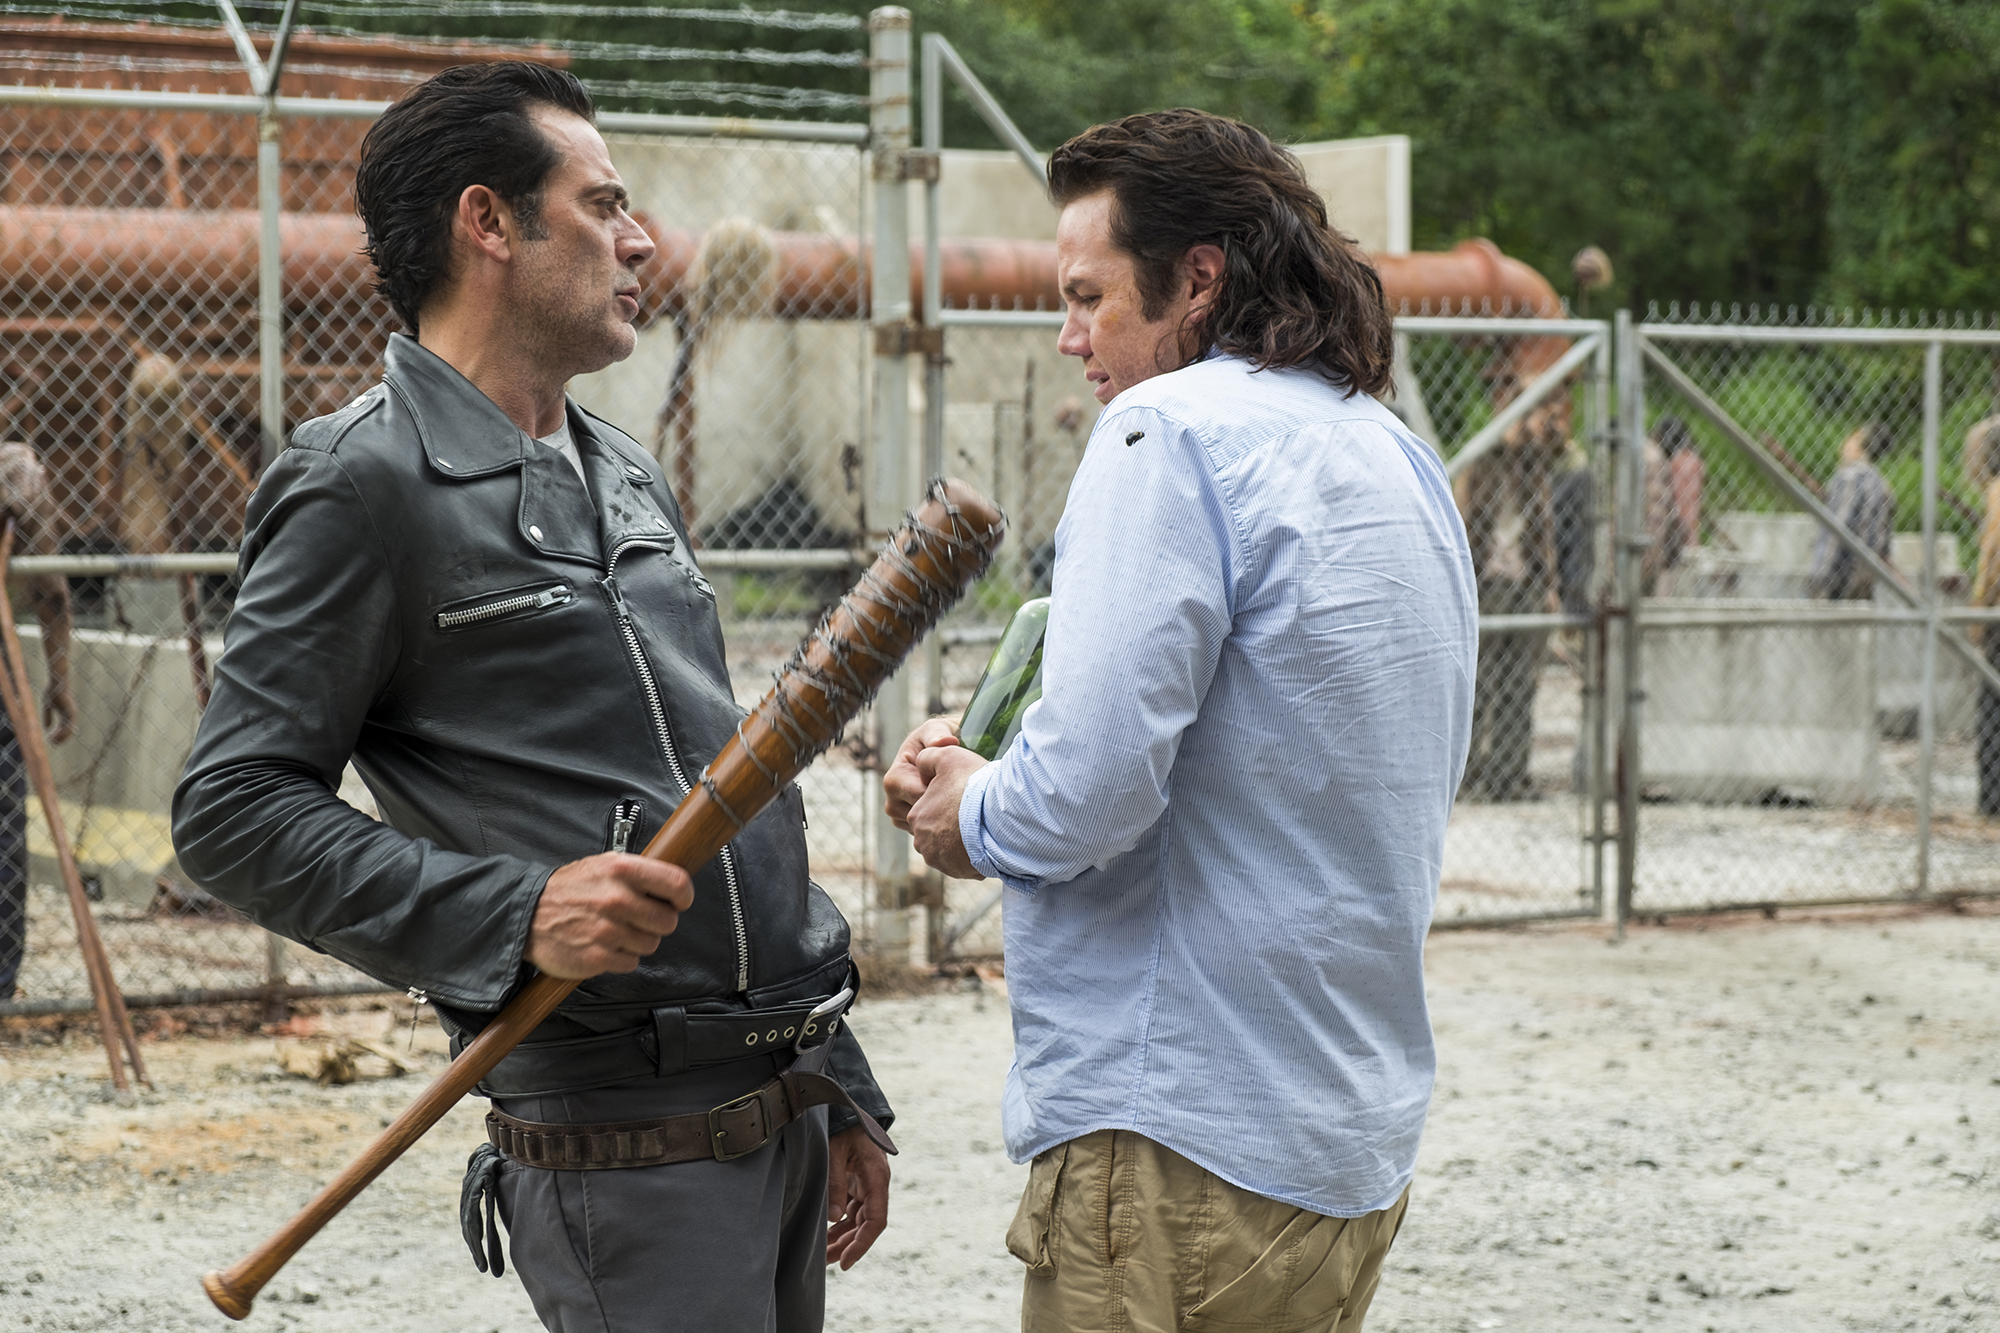 Jeffrey Dean Morgan as Negan, Josh McDermitt as Dr. Eugene Porter - The Walking Dead, Season 7, Episode 11